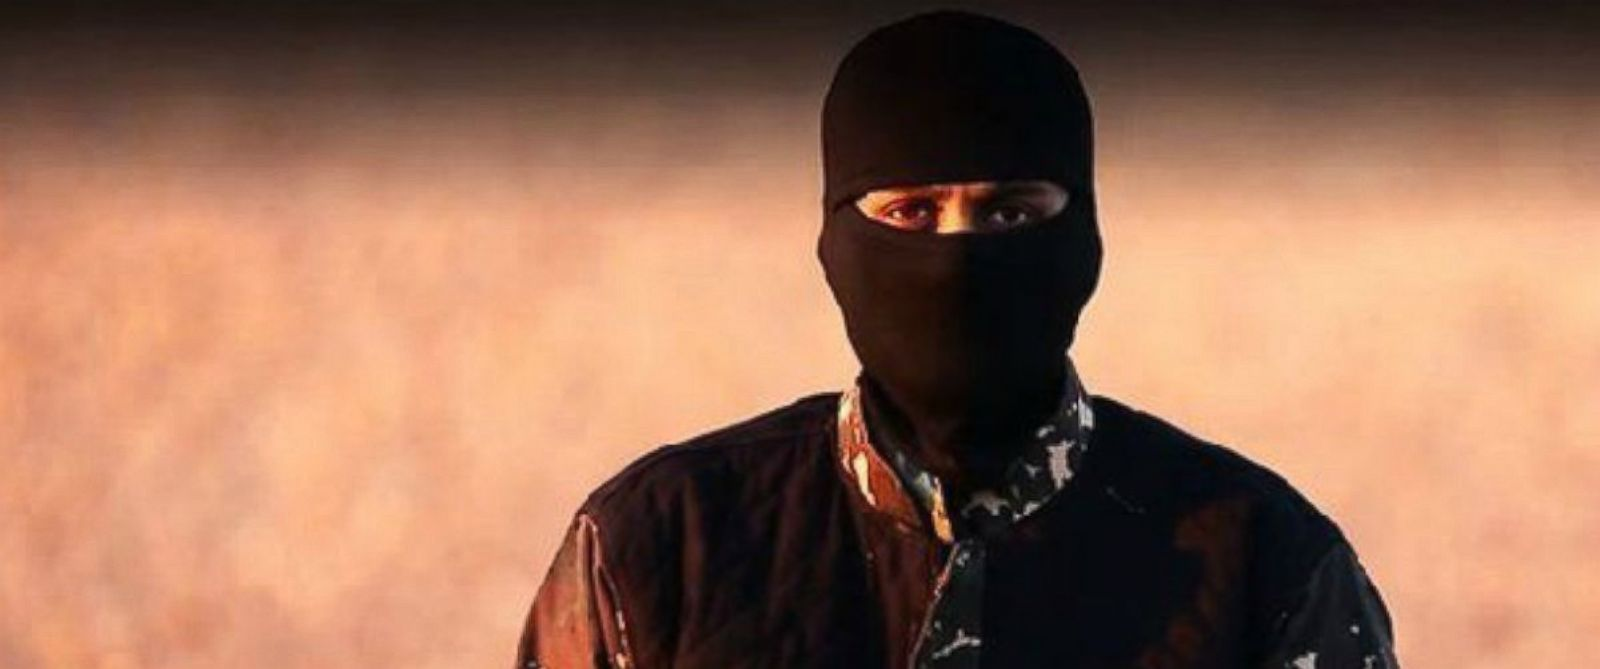 PHOTO: An unidentified jihadist with a British accent featured in a recent video released by the Islamic State.